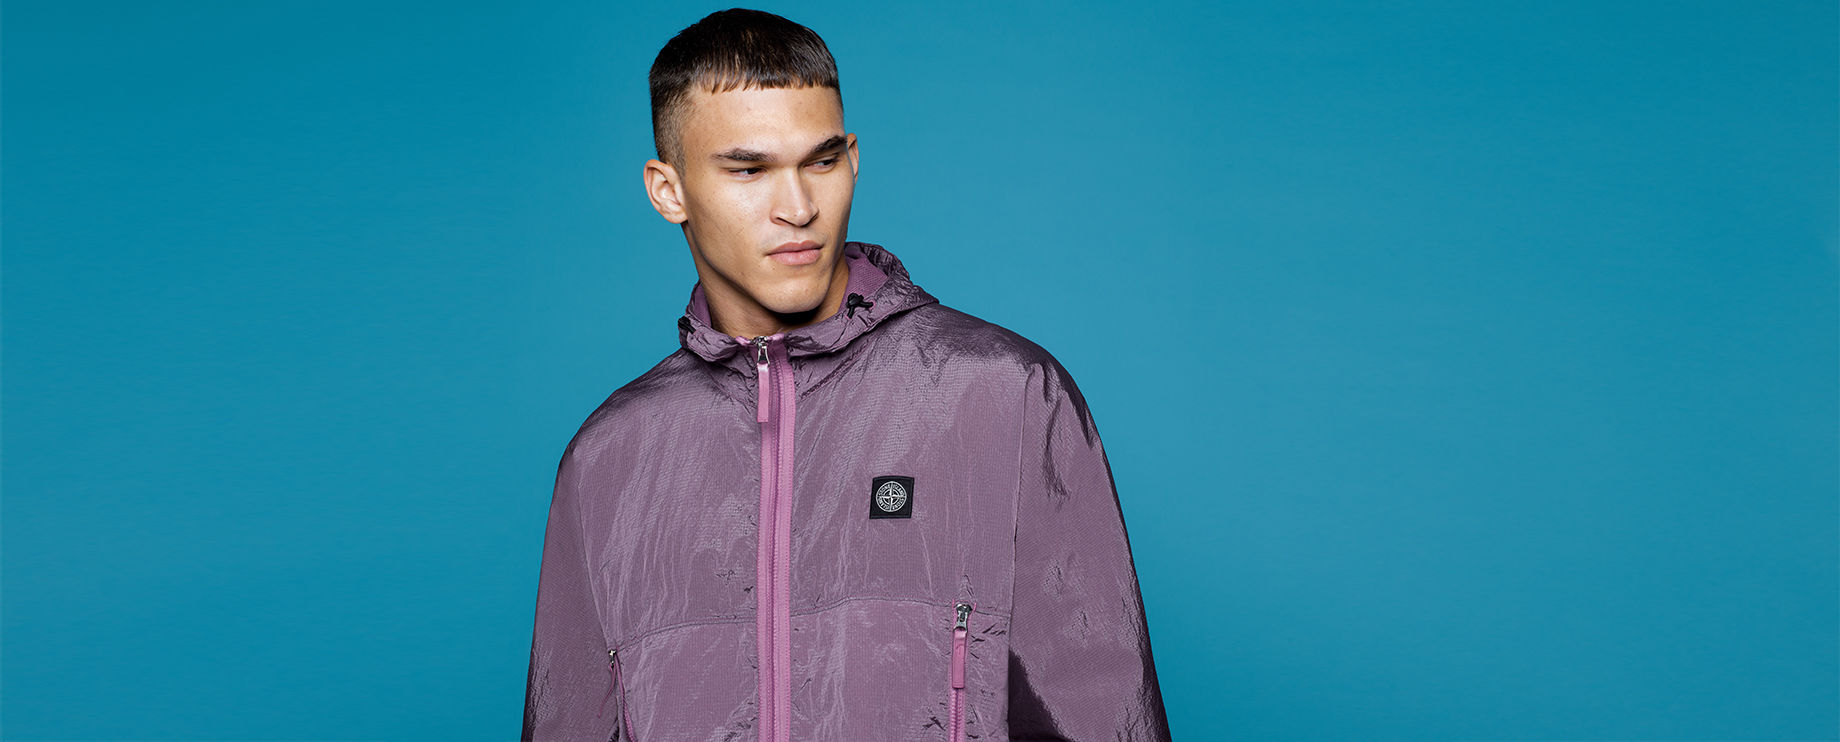 Model wearing a hooded purple jacket with high collar, zipper closure and Stone Island patch at left chest.